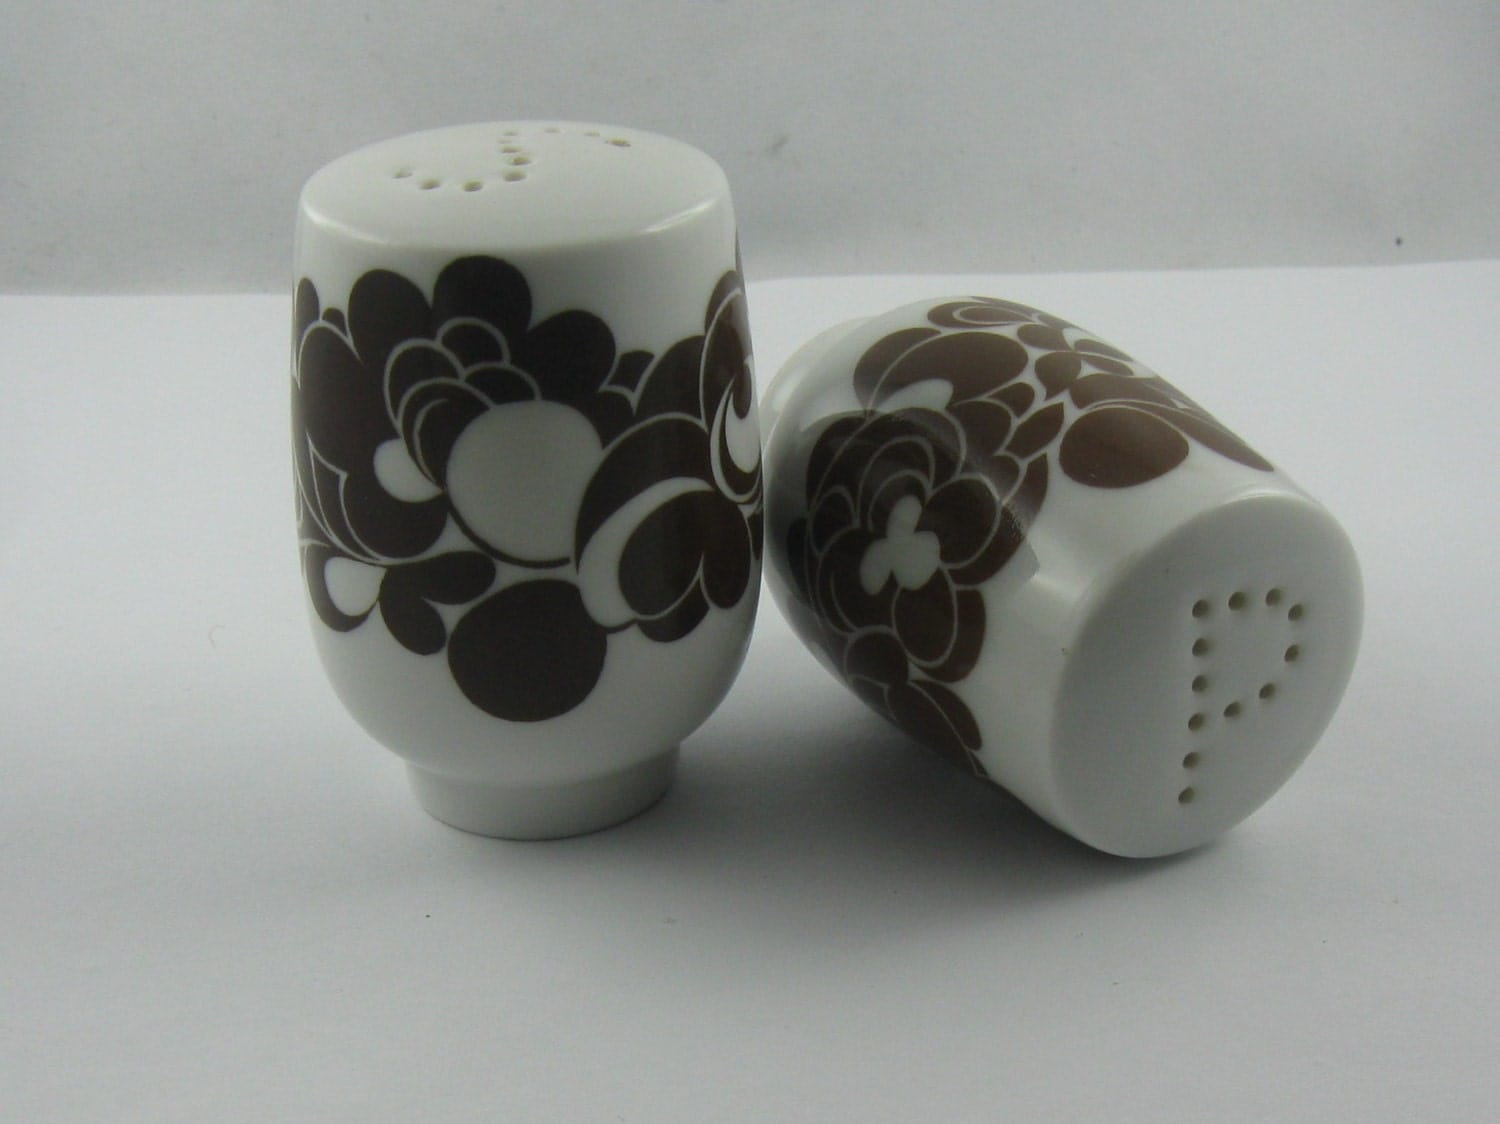 Salt And Pepper Shakers Made Of Porcelain Rosenthal Germany